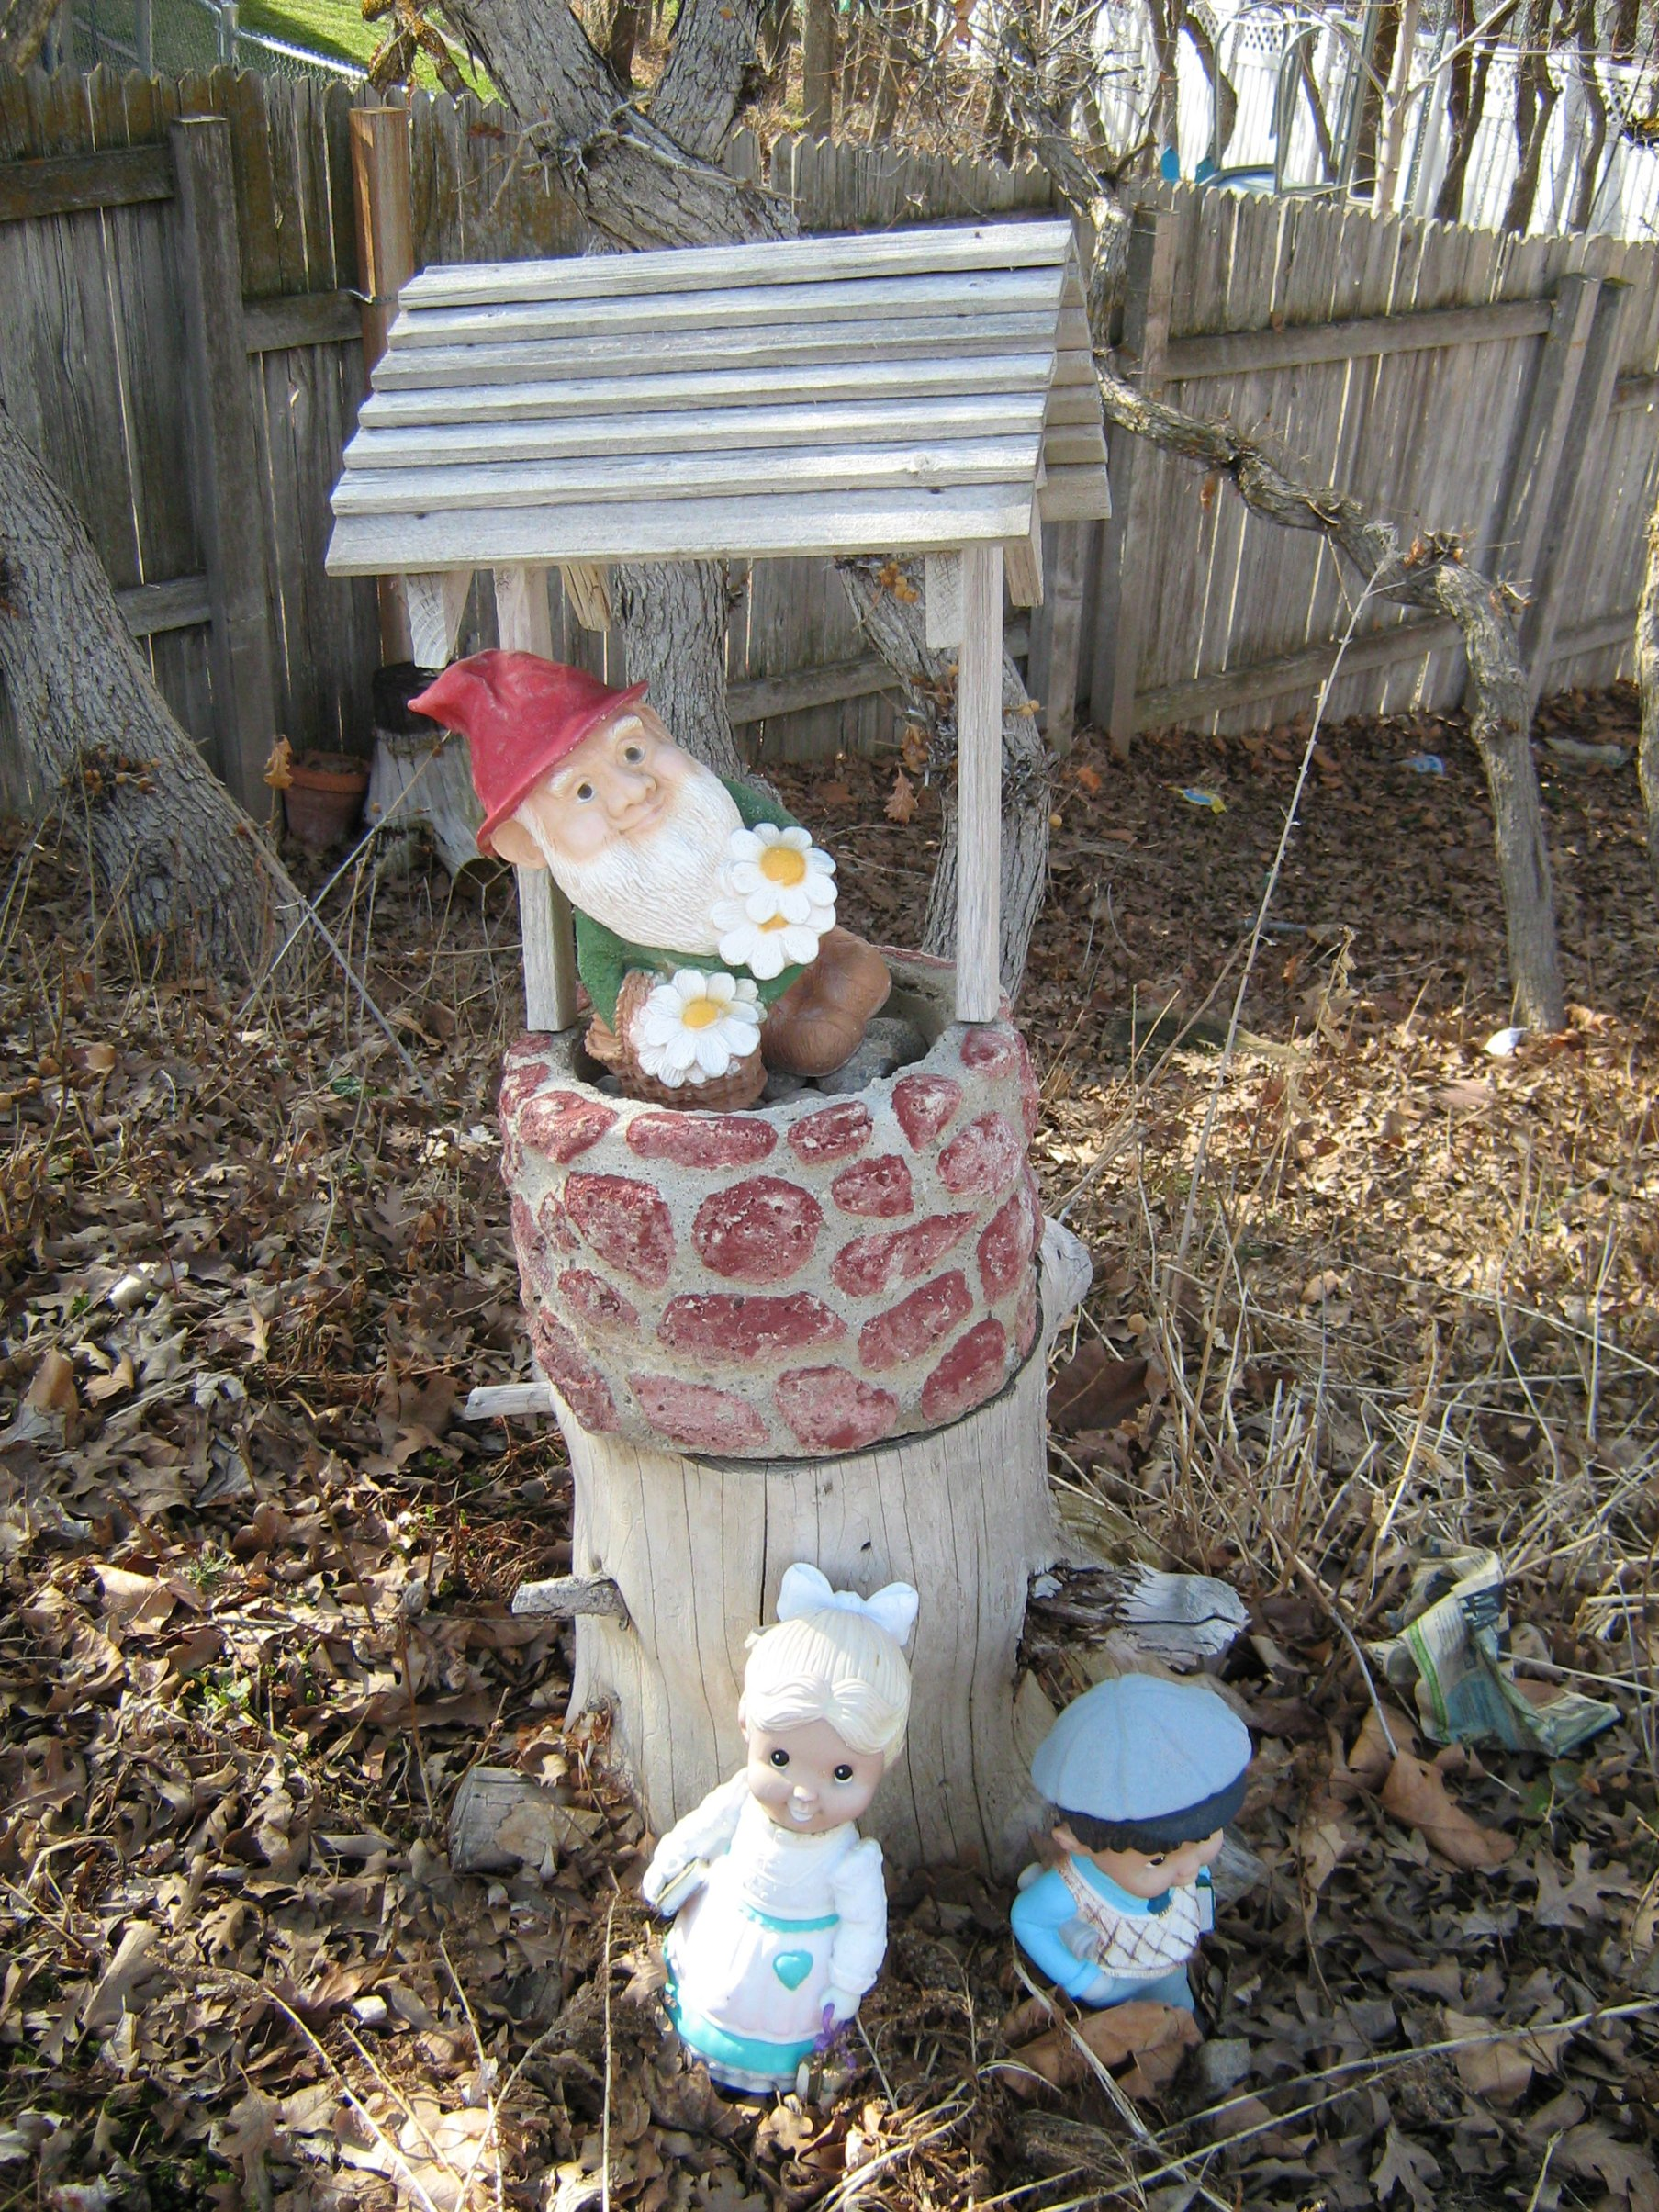 Shrine to the Yard Gnome